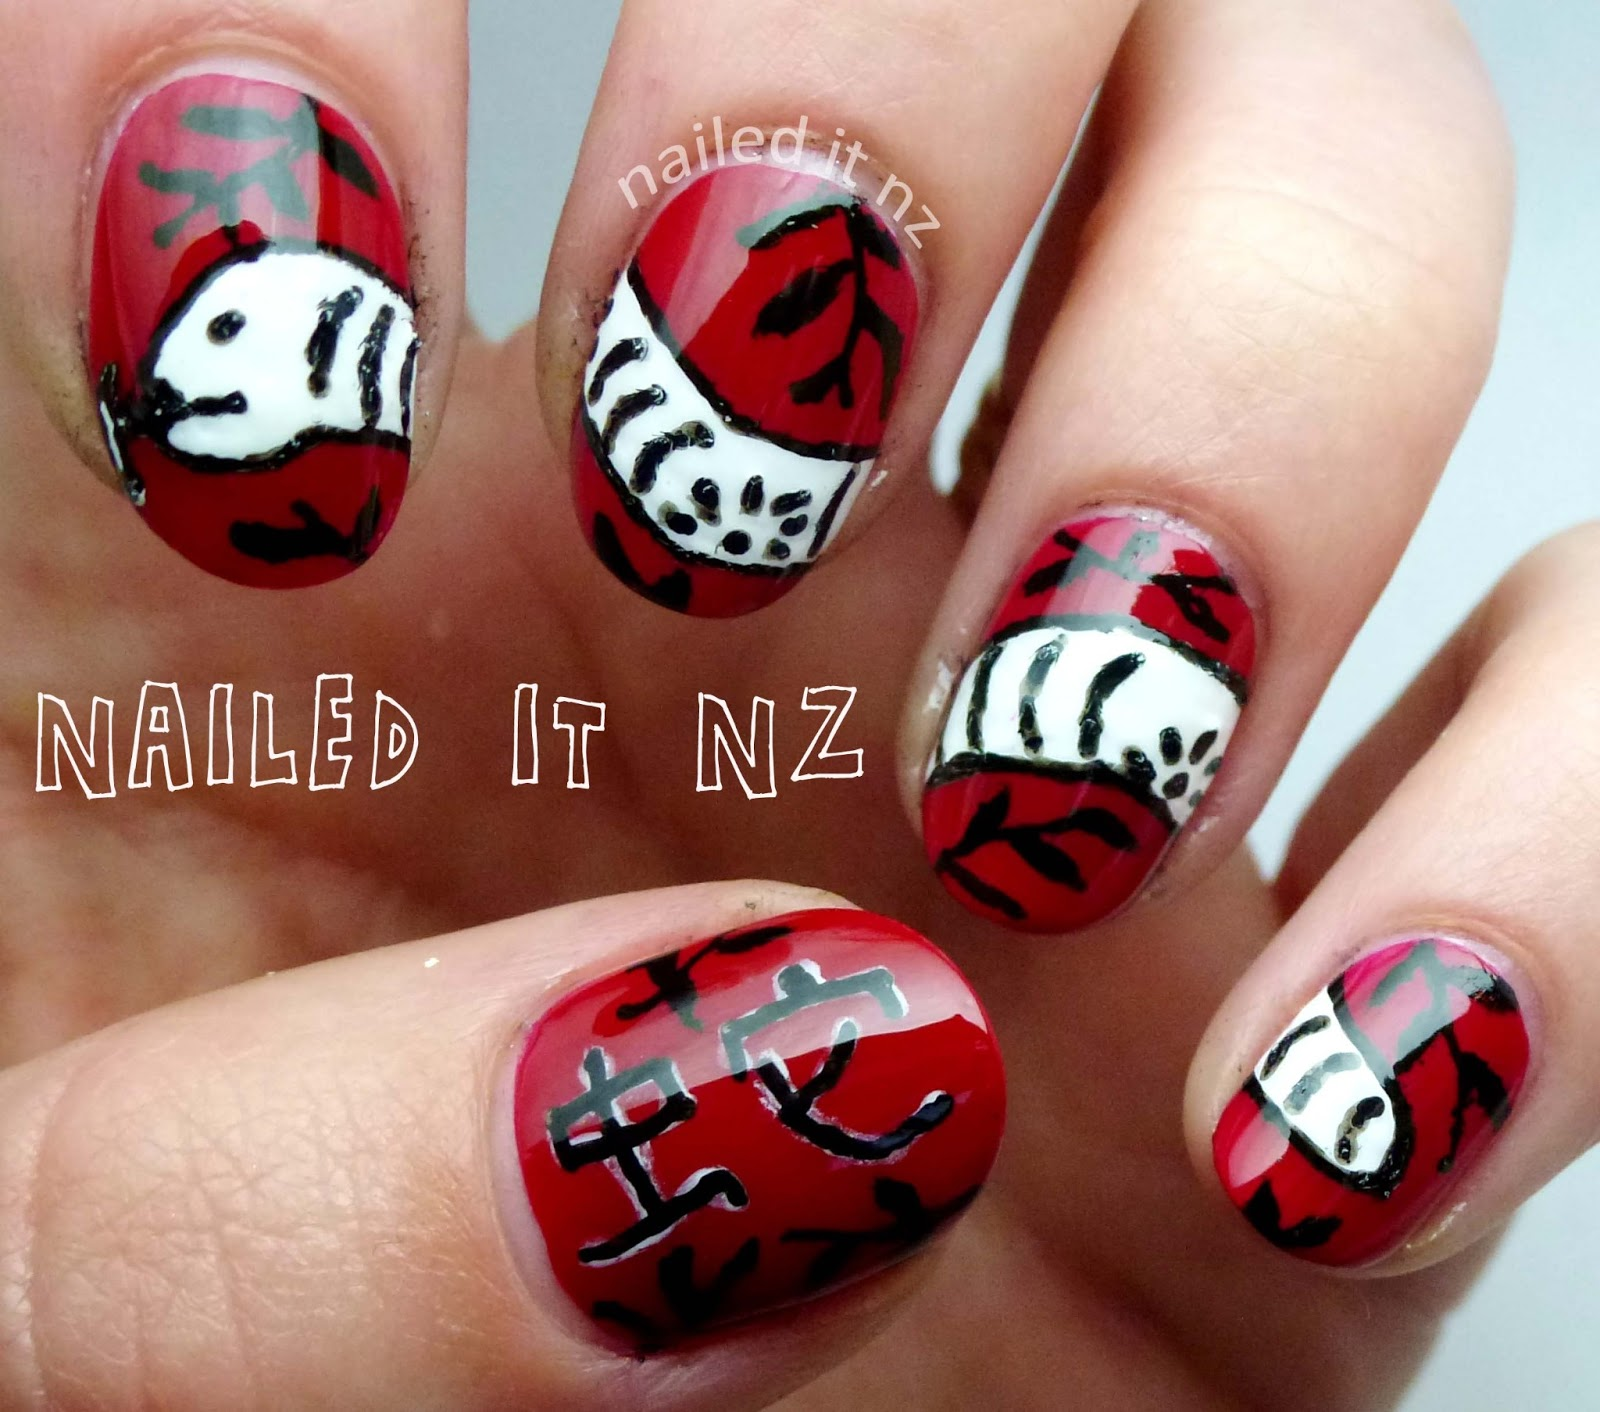 Chinese New Years nails - Year of the Snake!